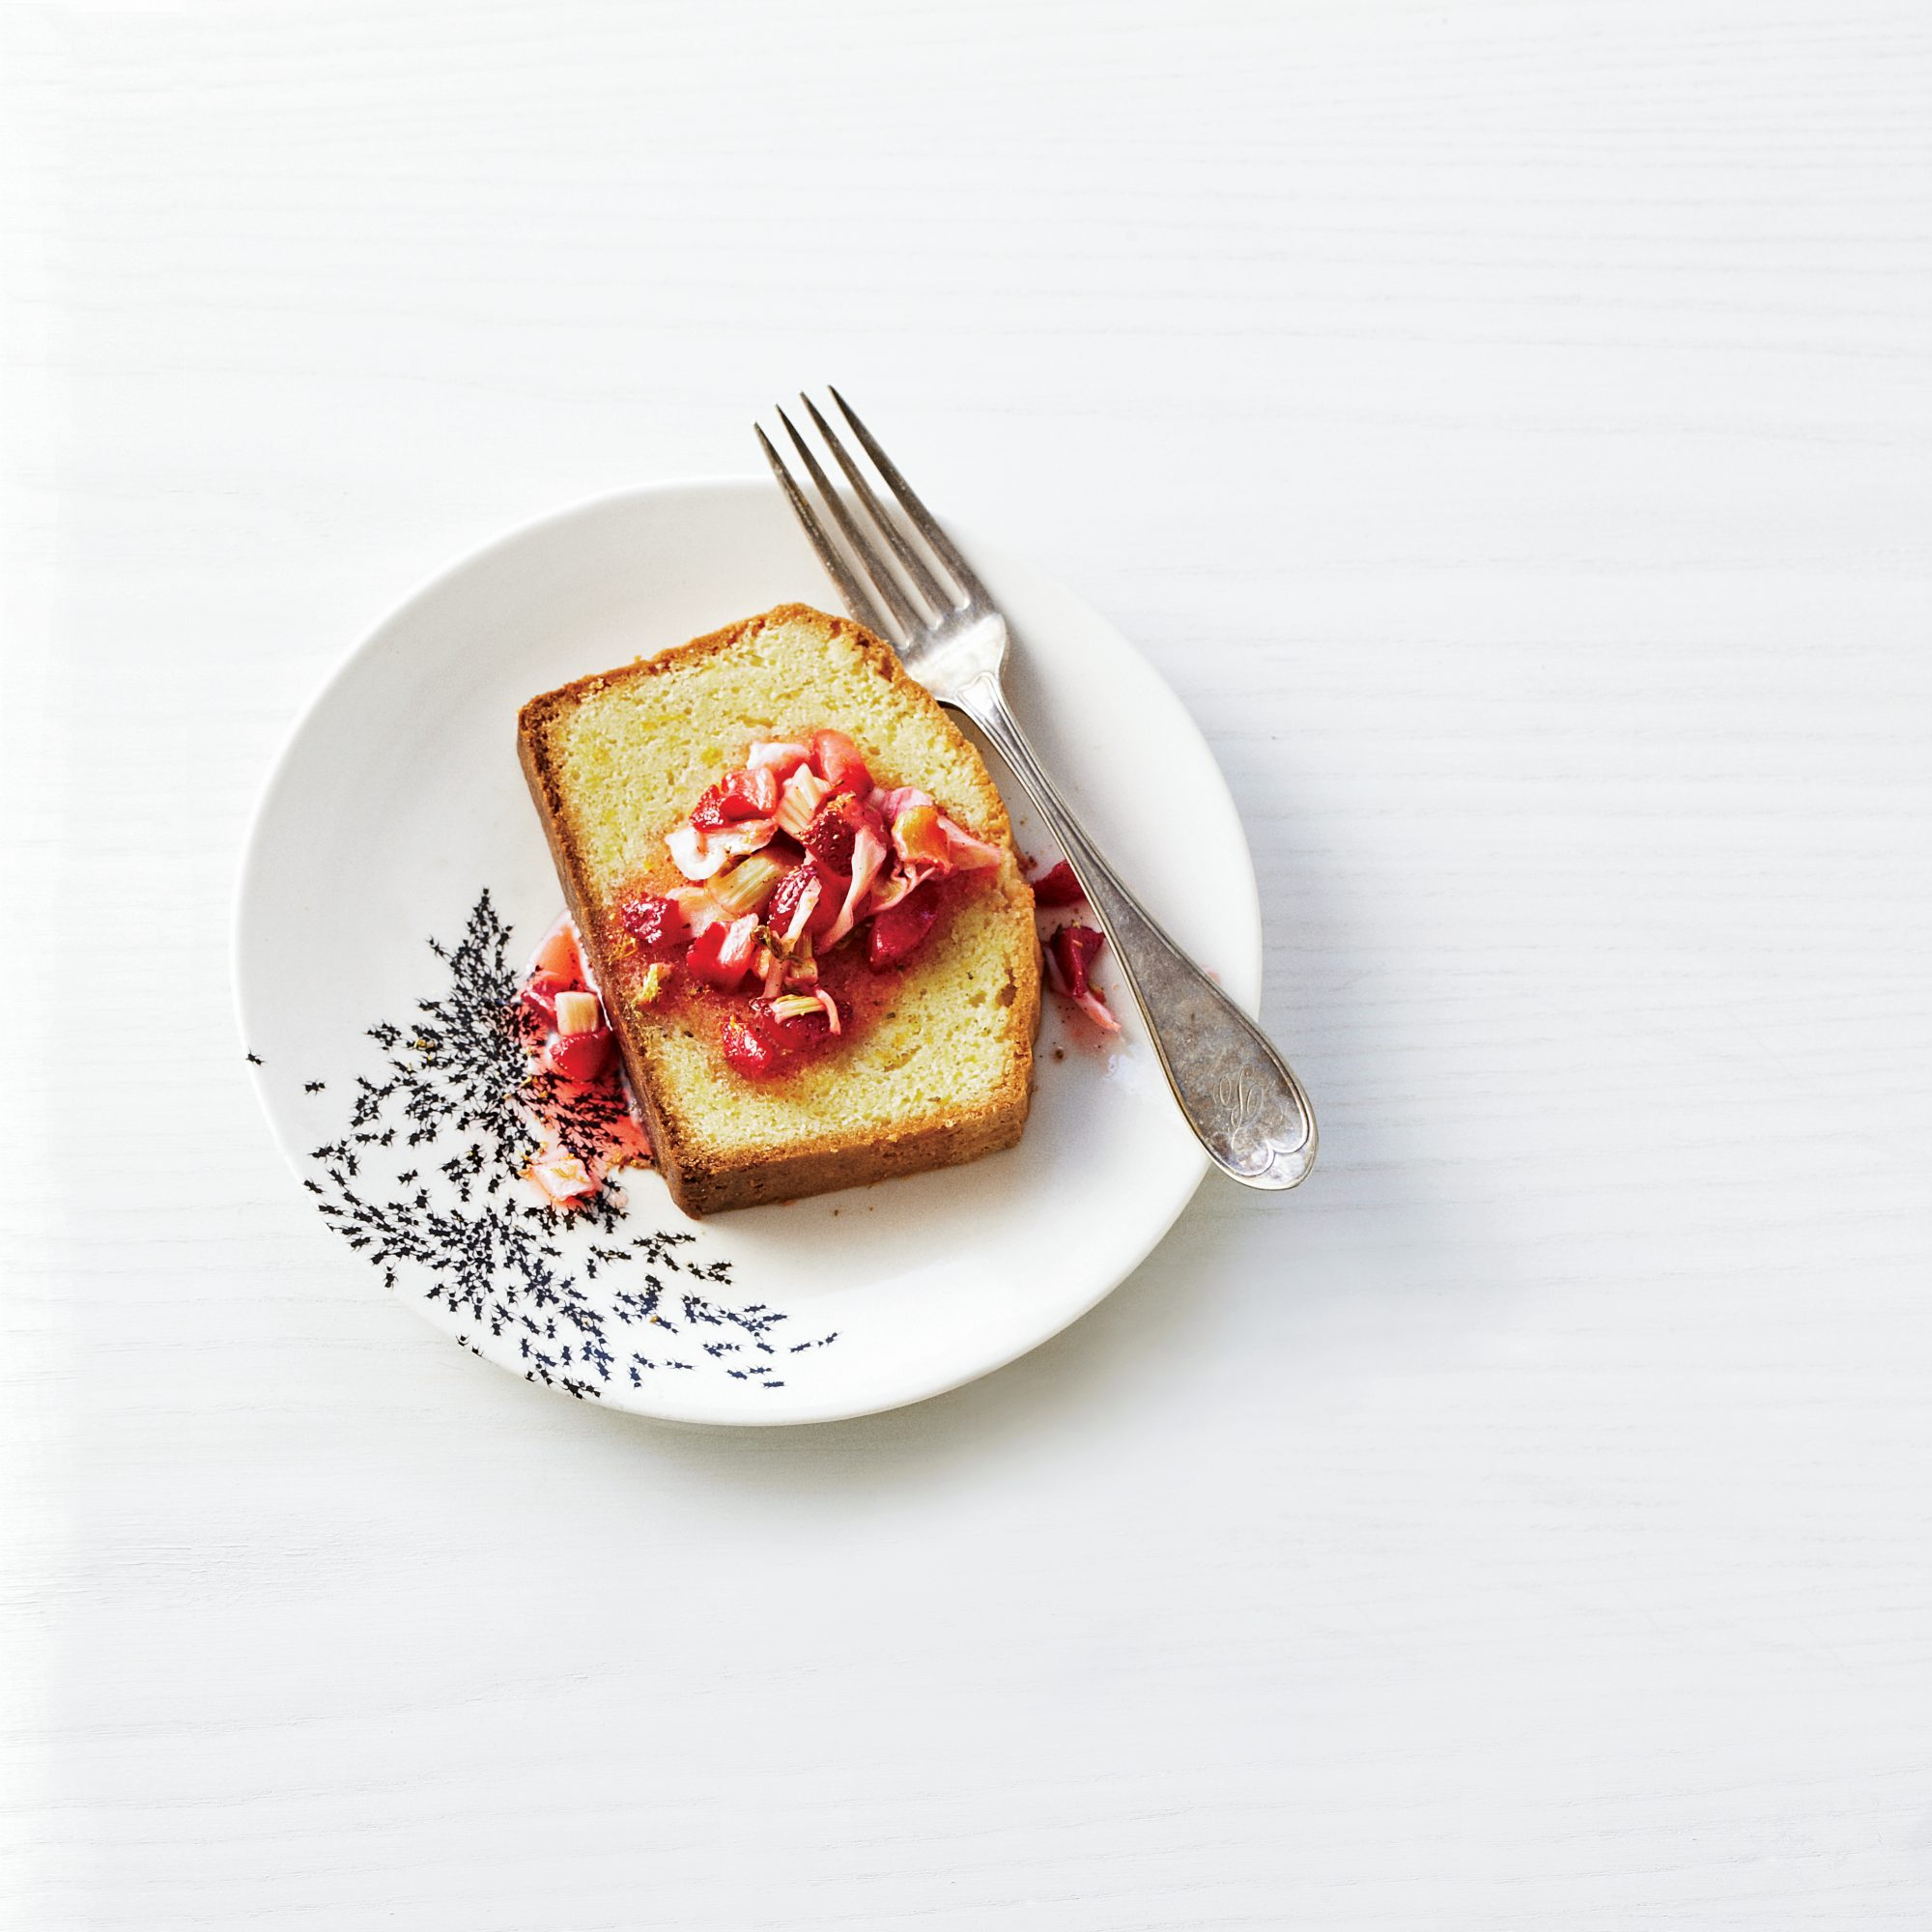 201104-r-strawberry-pound-cake.jpg